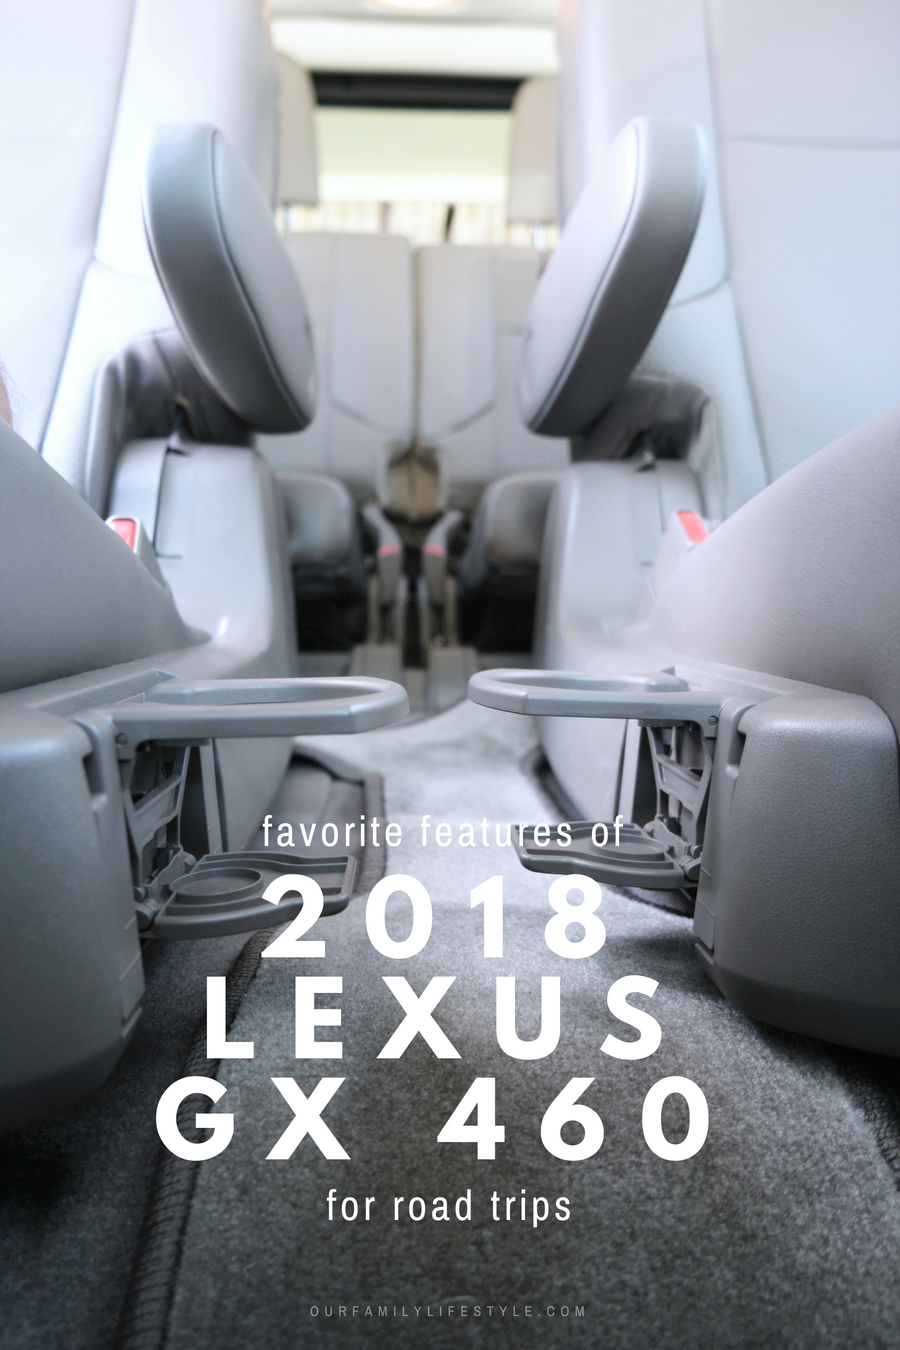 Favorite Features of the 2018 Lexus GX 460 Luxury for Road Trips